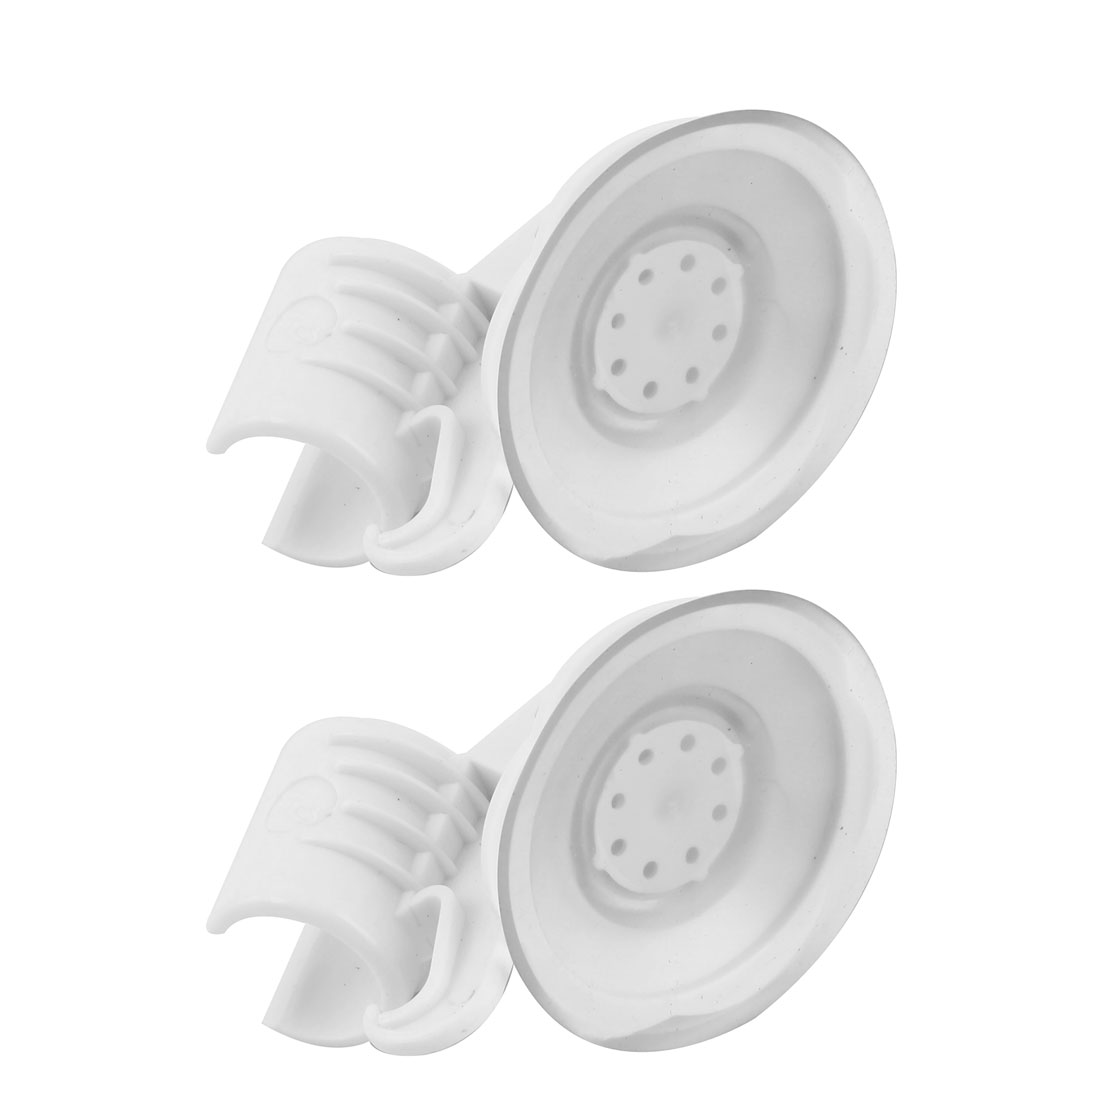 Dormitory Home Plastic Suction Cup Adjustable Shower Head Holder White 2pcs